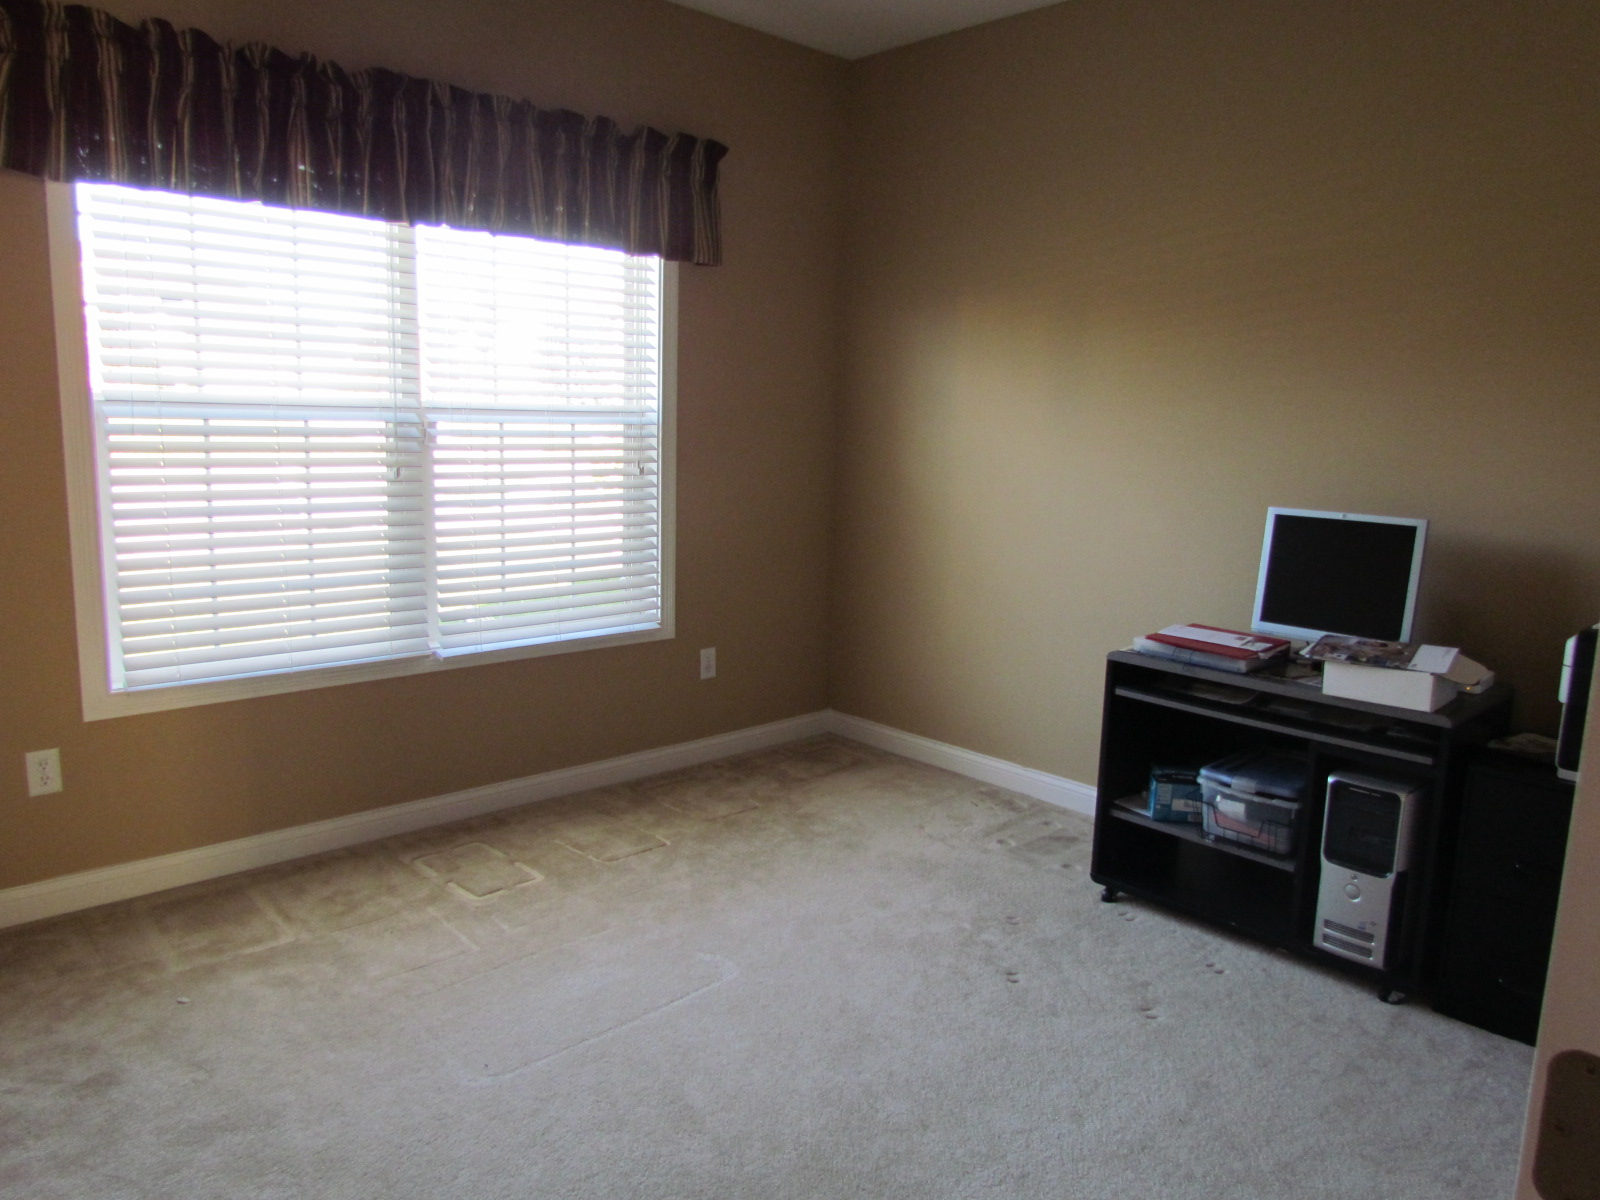 First Room Renovation In The New House Complete